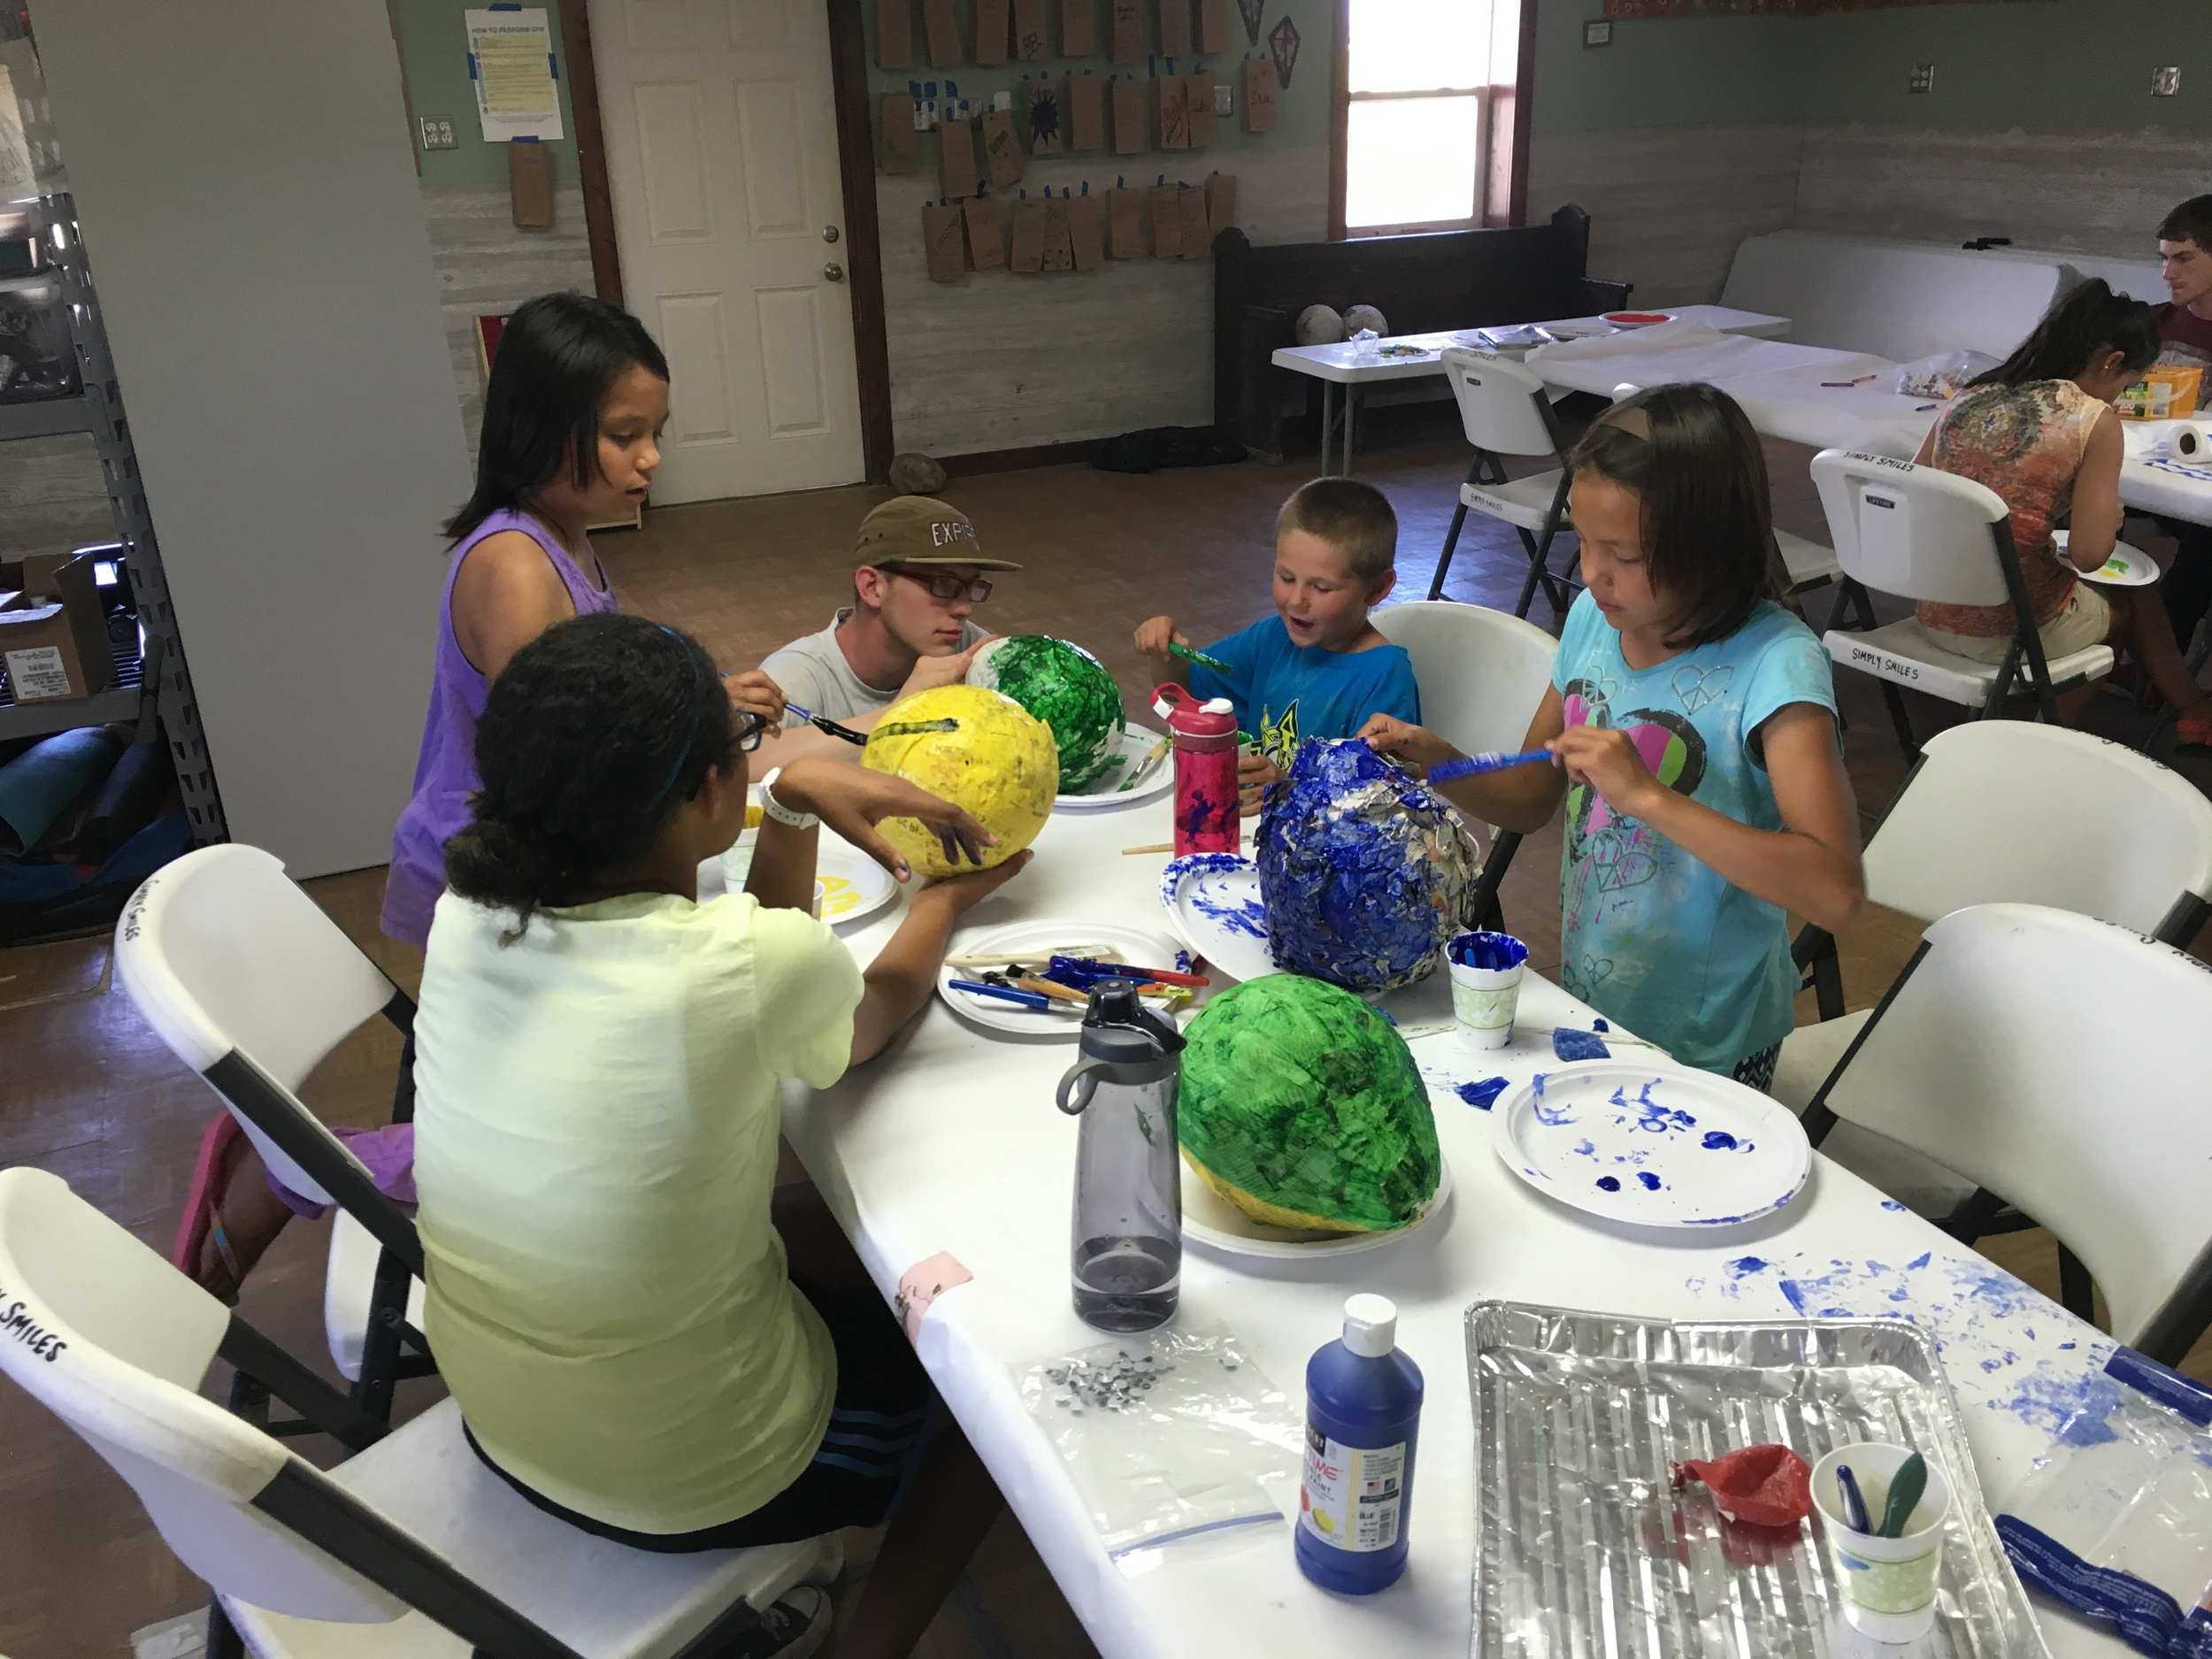 Personal piñata making at camp!